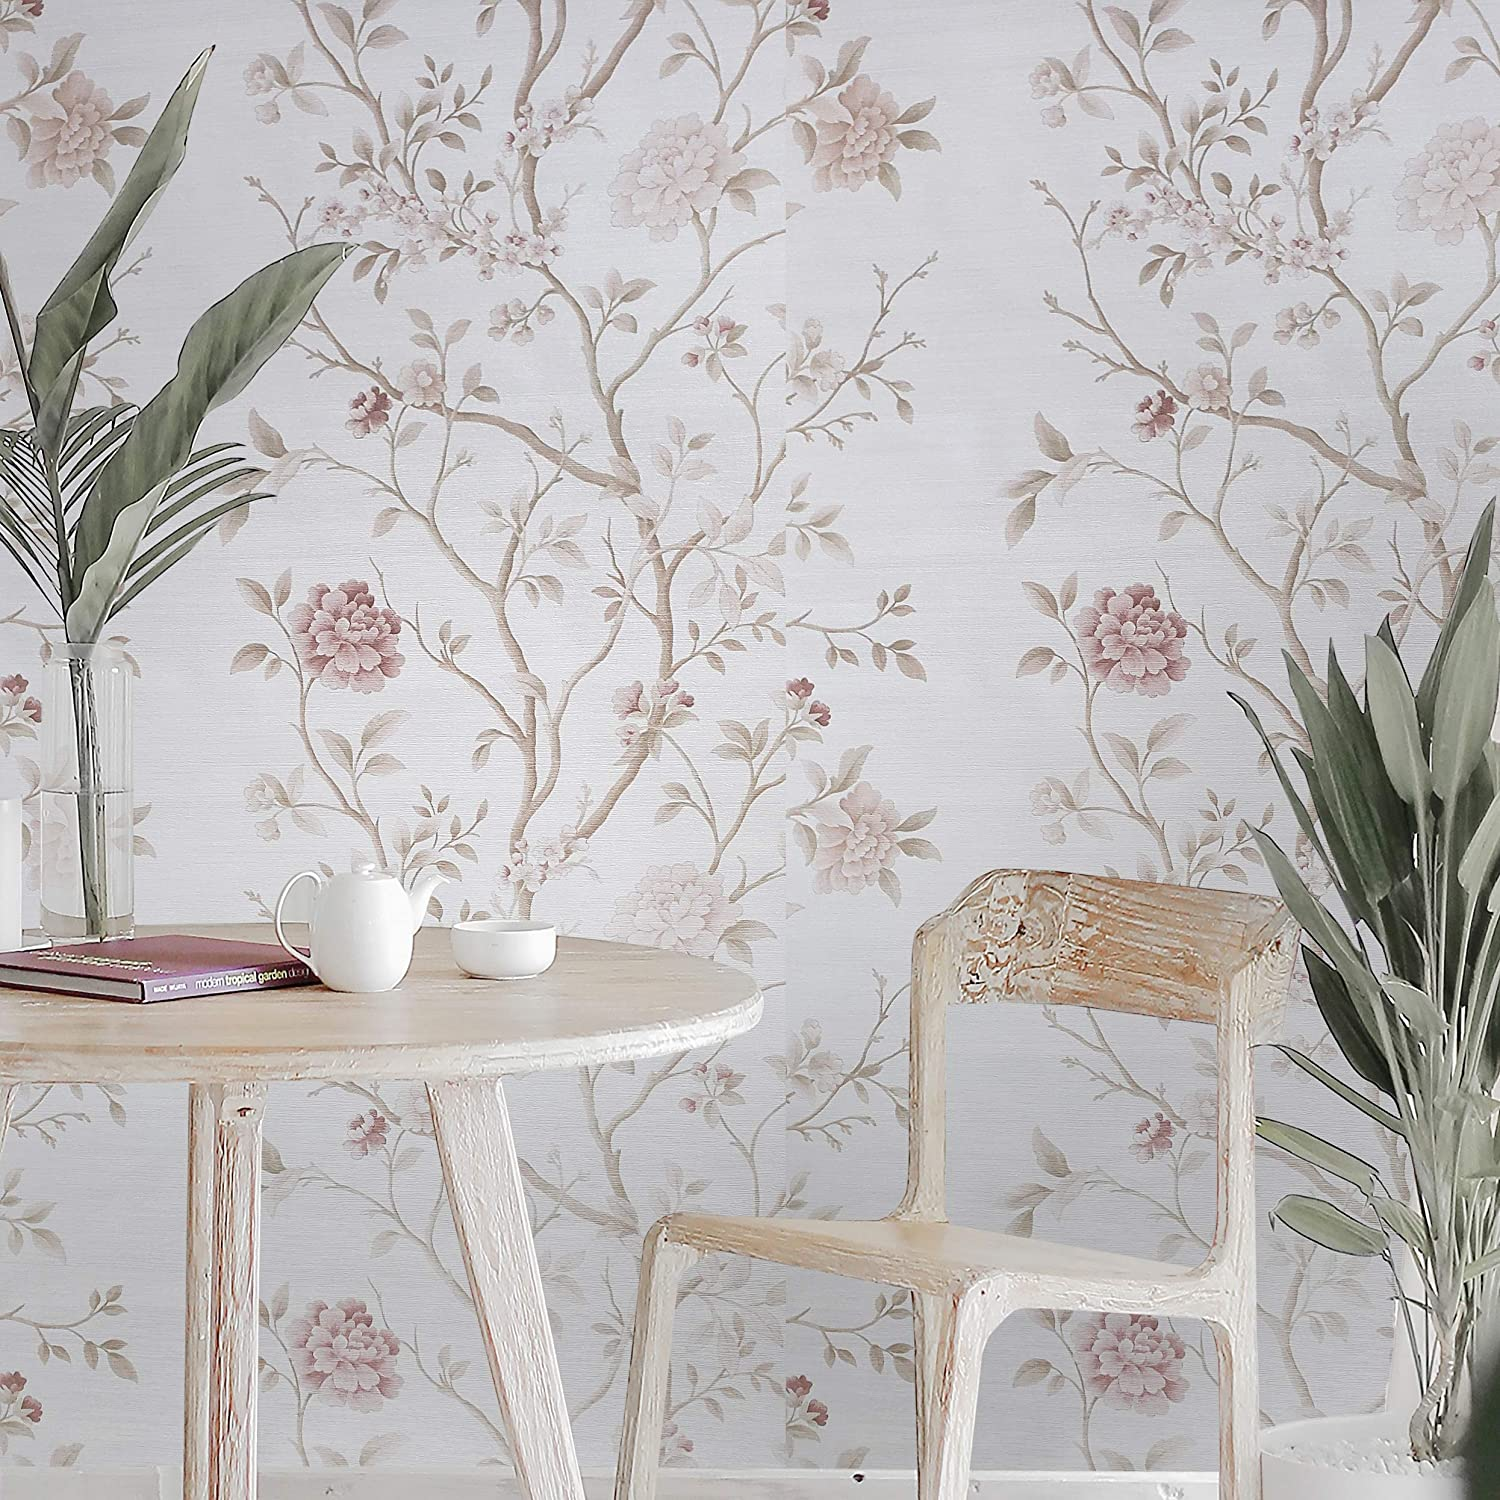 Wallcoverings Embossed Vinyl Non-Woven Wallpaper Modern Off White Beige Faux Sack Grasscloth Textured Lines coverings Paste The Wall